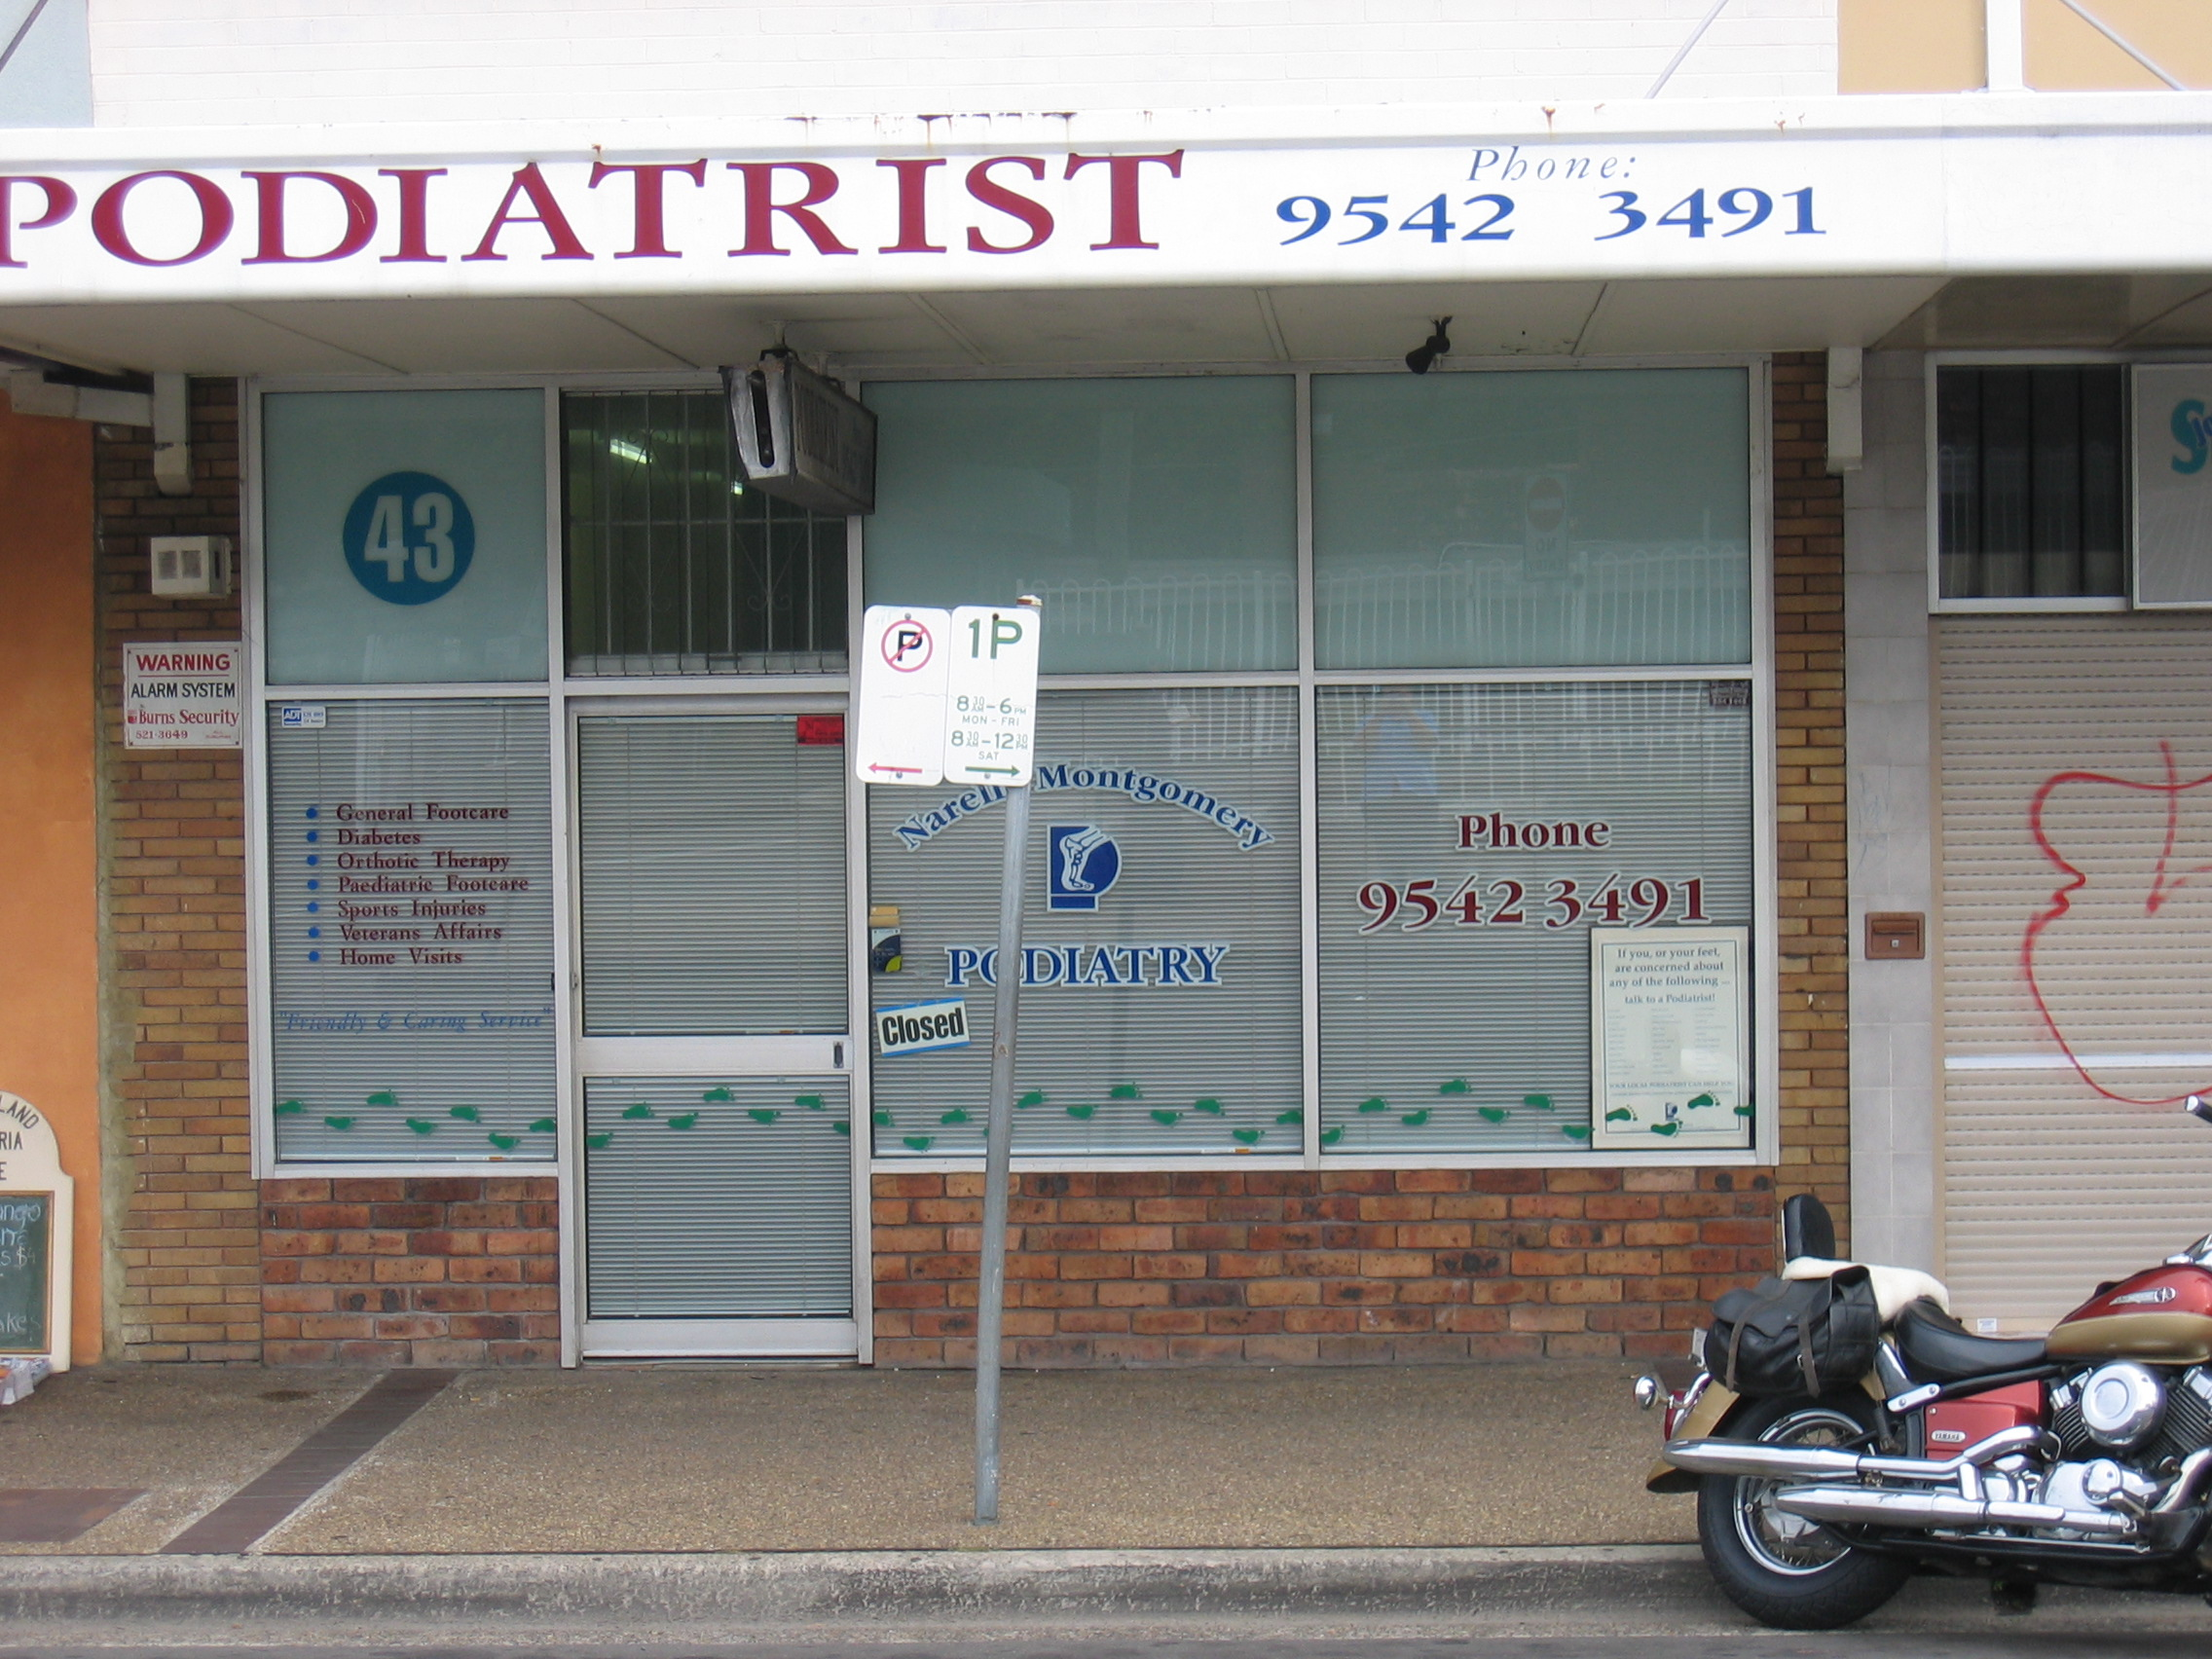 25 years for Sutherland Podiatry Centre